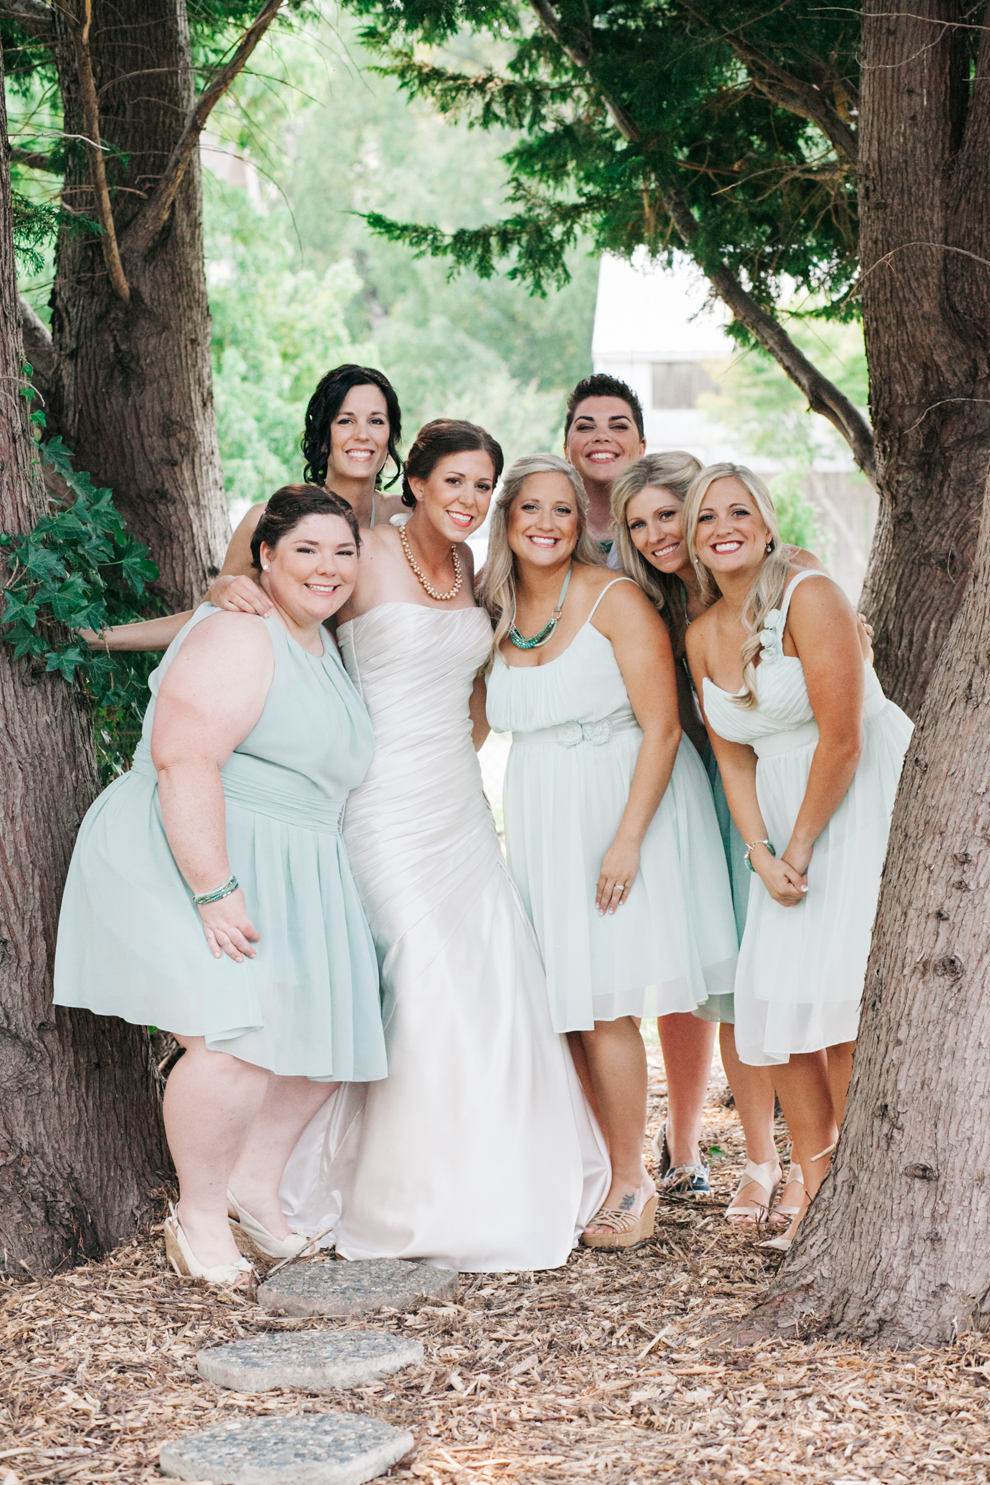 025-bellingham-bride-bridesmaids-first-look-katheryn-moran-photography.jpg